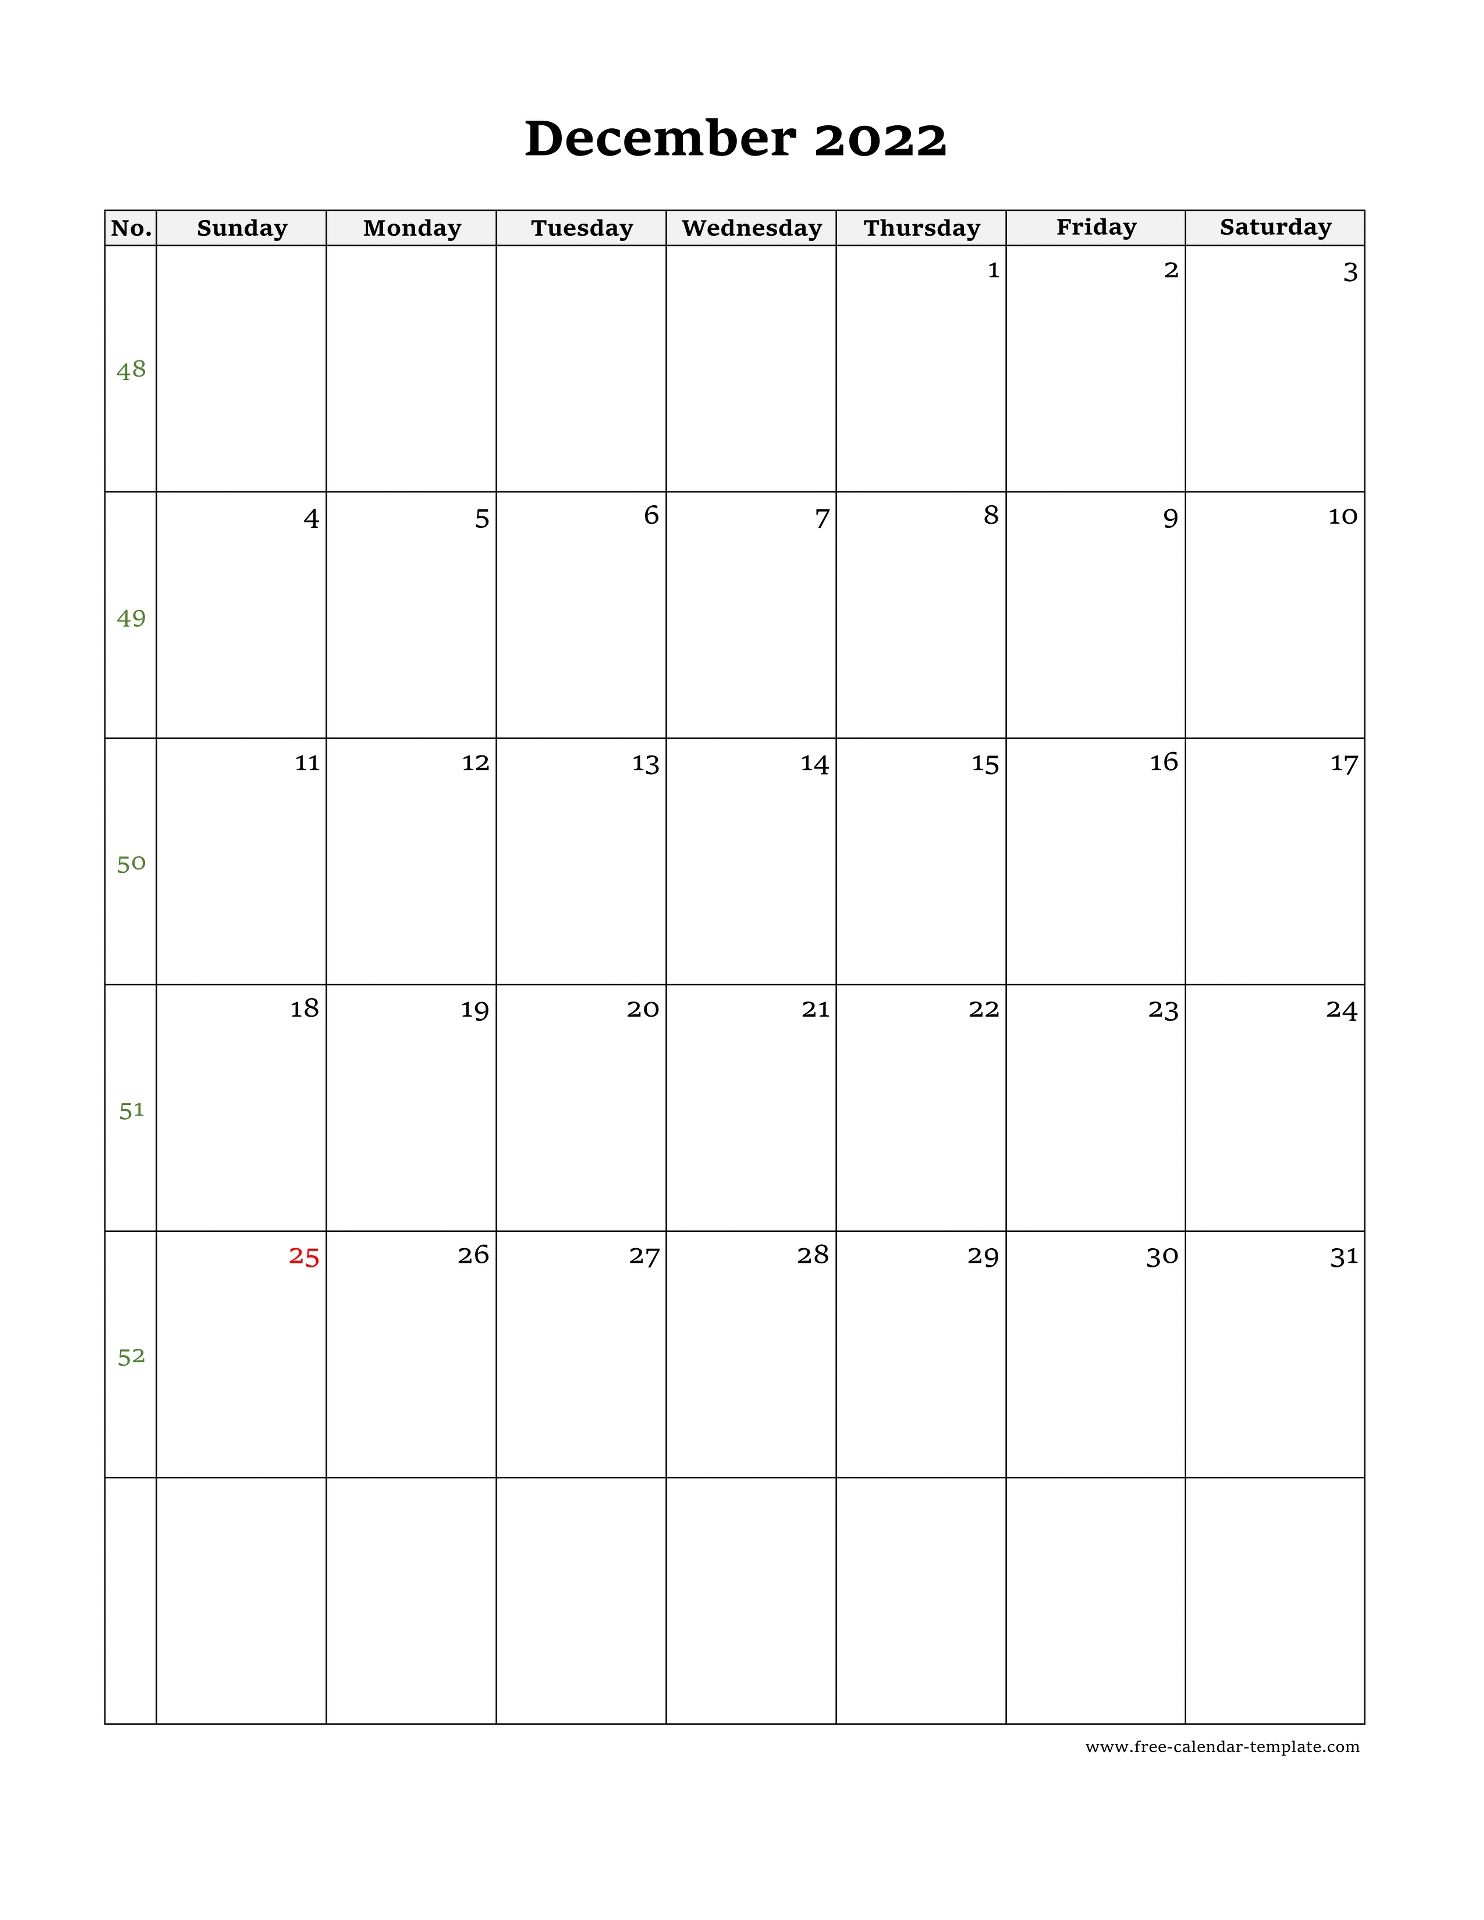 November December Calendar 2022.December Calendar 2022 Simple Design With Large Box On Each Day For Notes Free Calendar Template Com